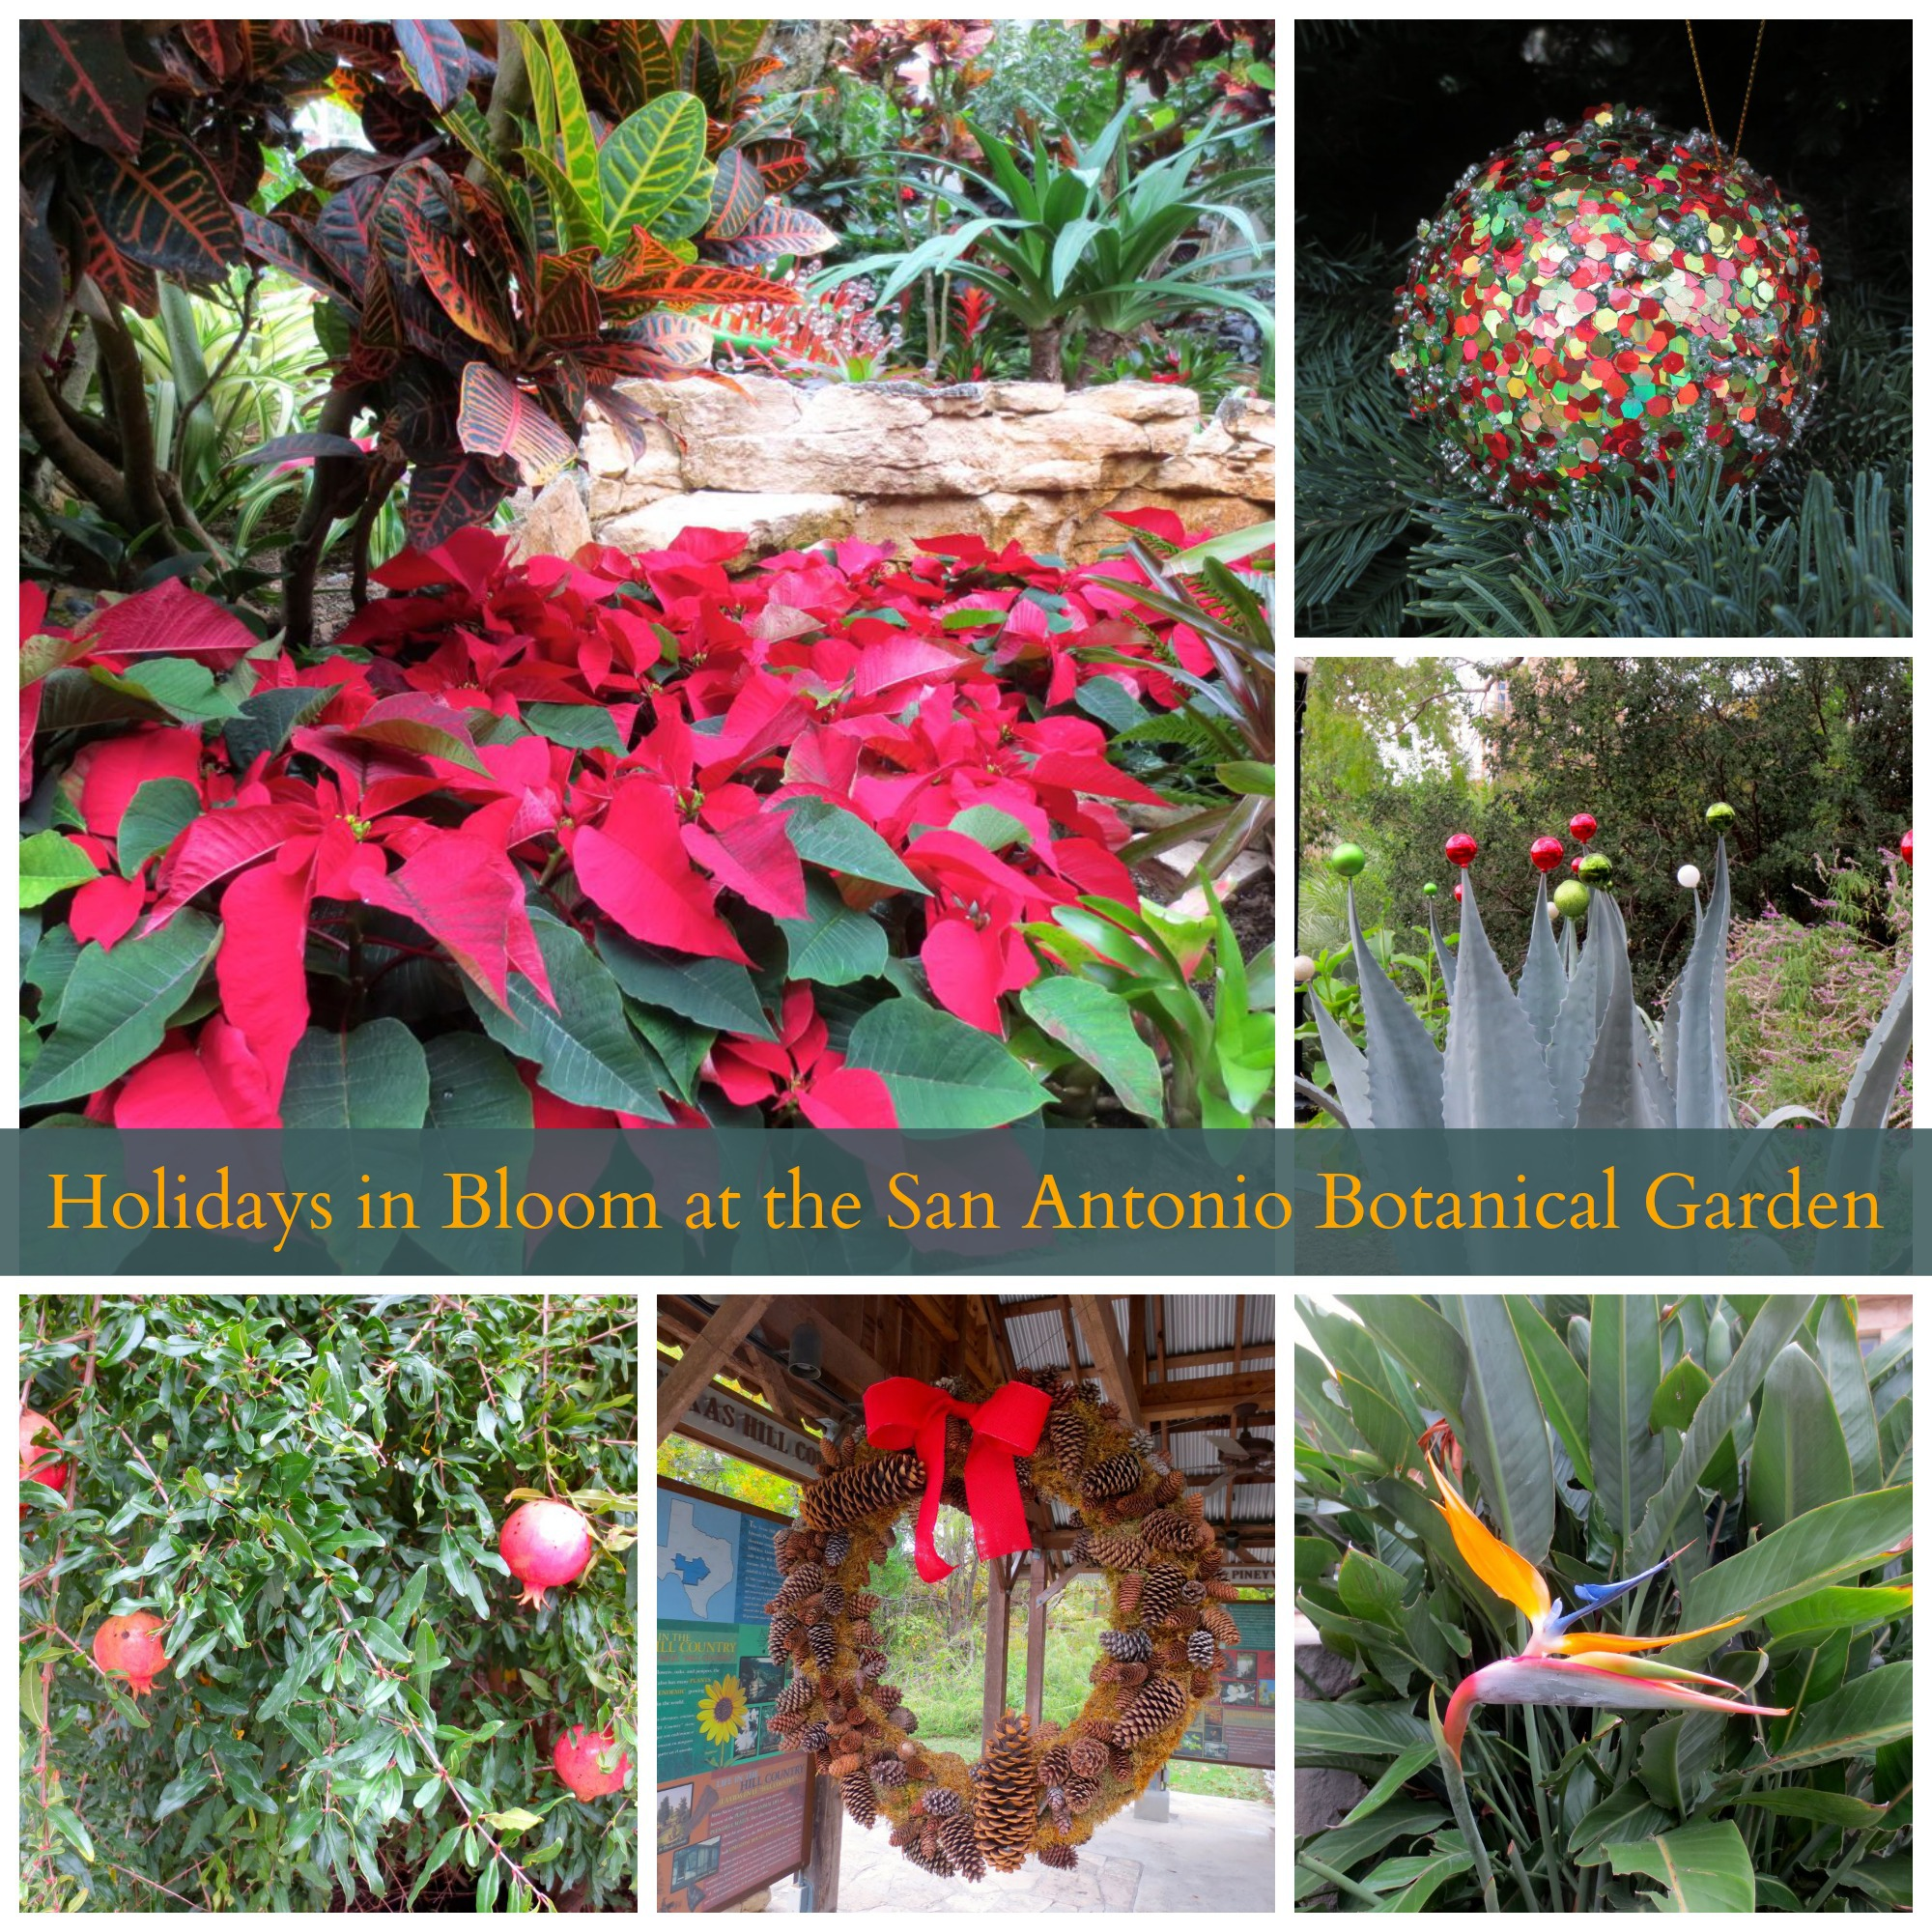 Gallery Holidays In Bloom At The San Antonio Botanical Garden San Antonio Charter Moms